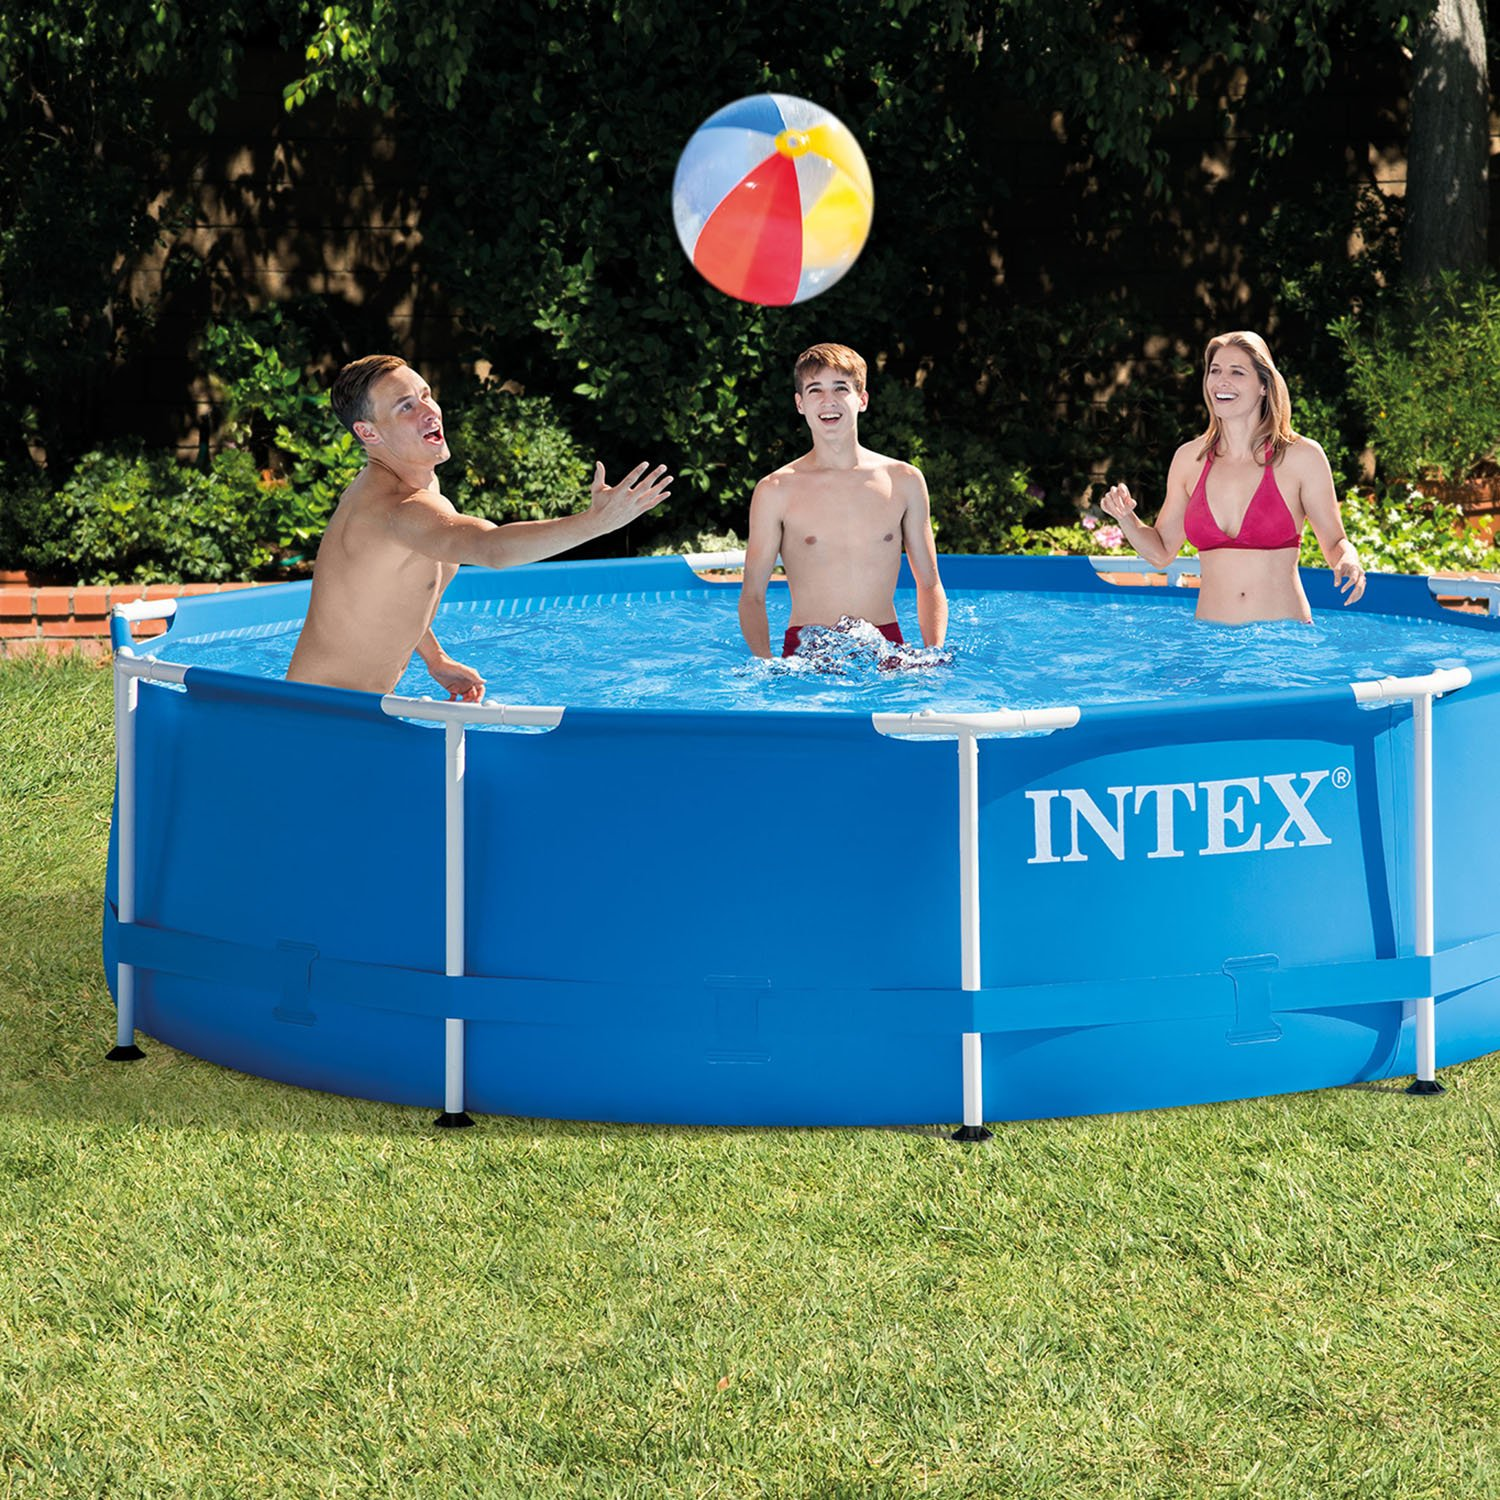 Intex 10 39 x 30 metal frame swimming pool set with filter pump 28201eh ebay Intex inflatable swimming pool